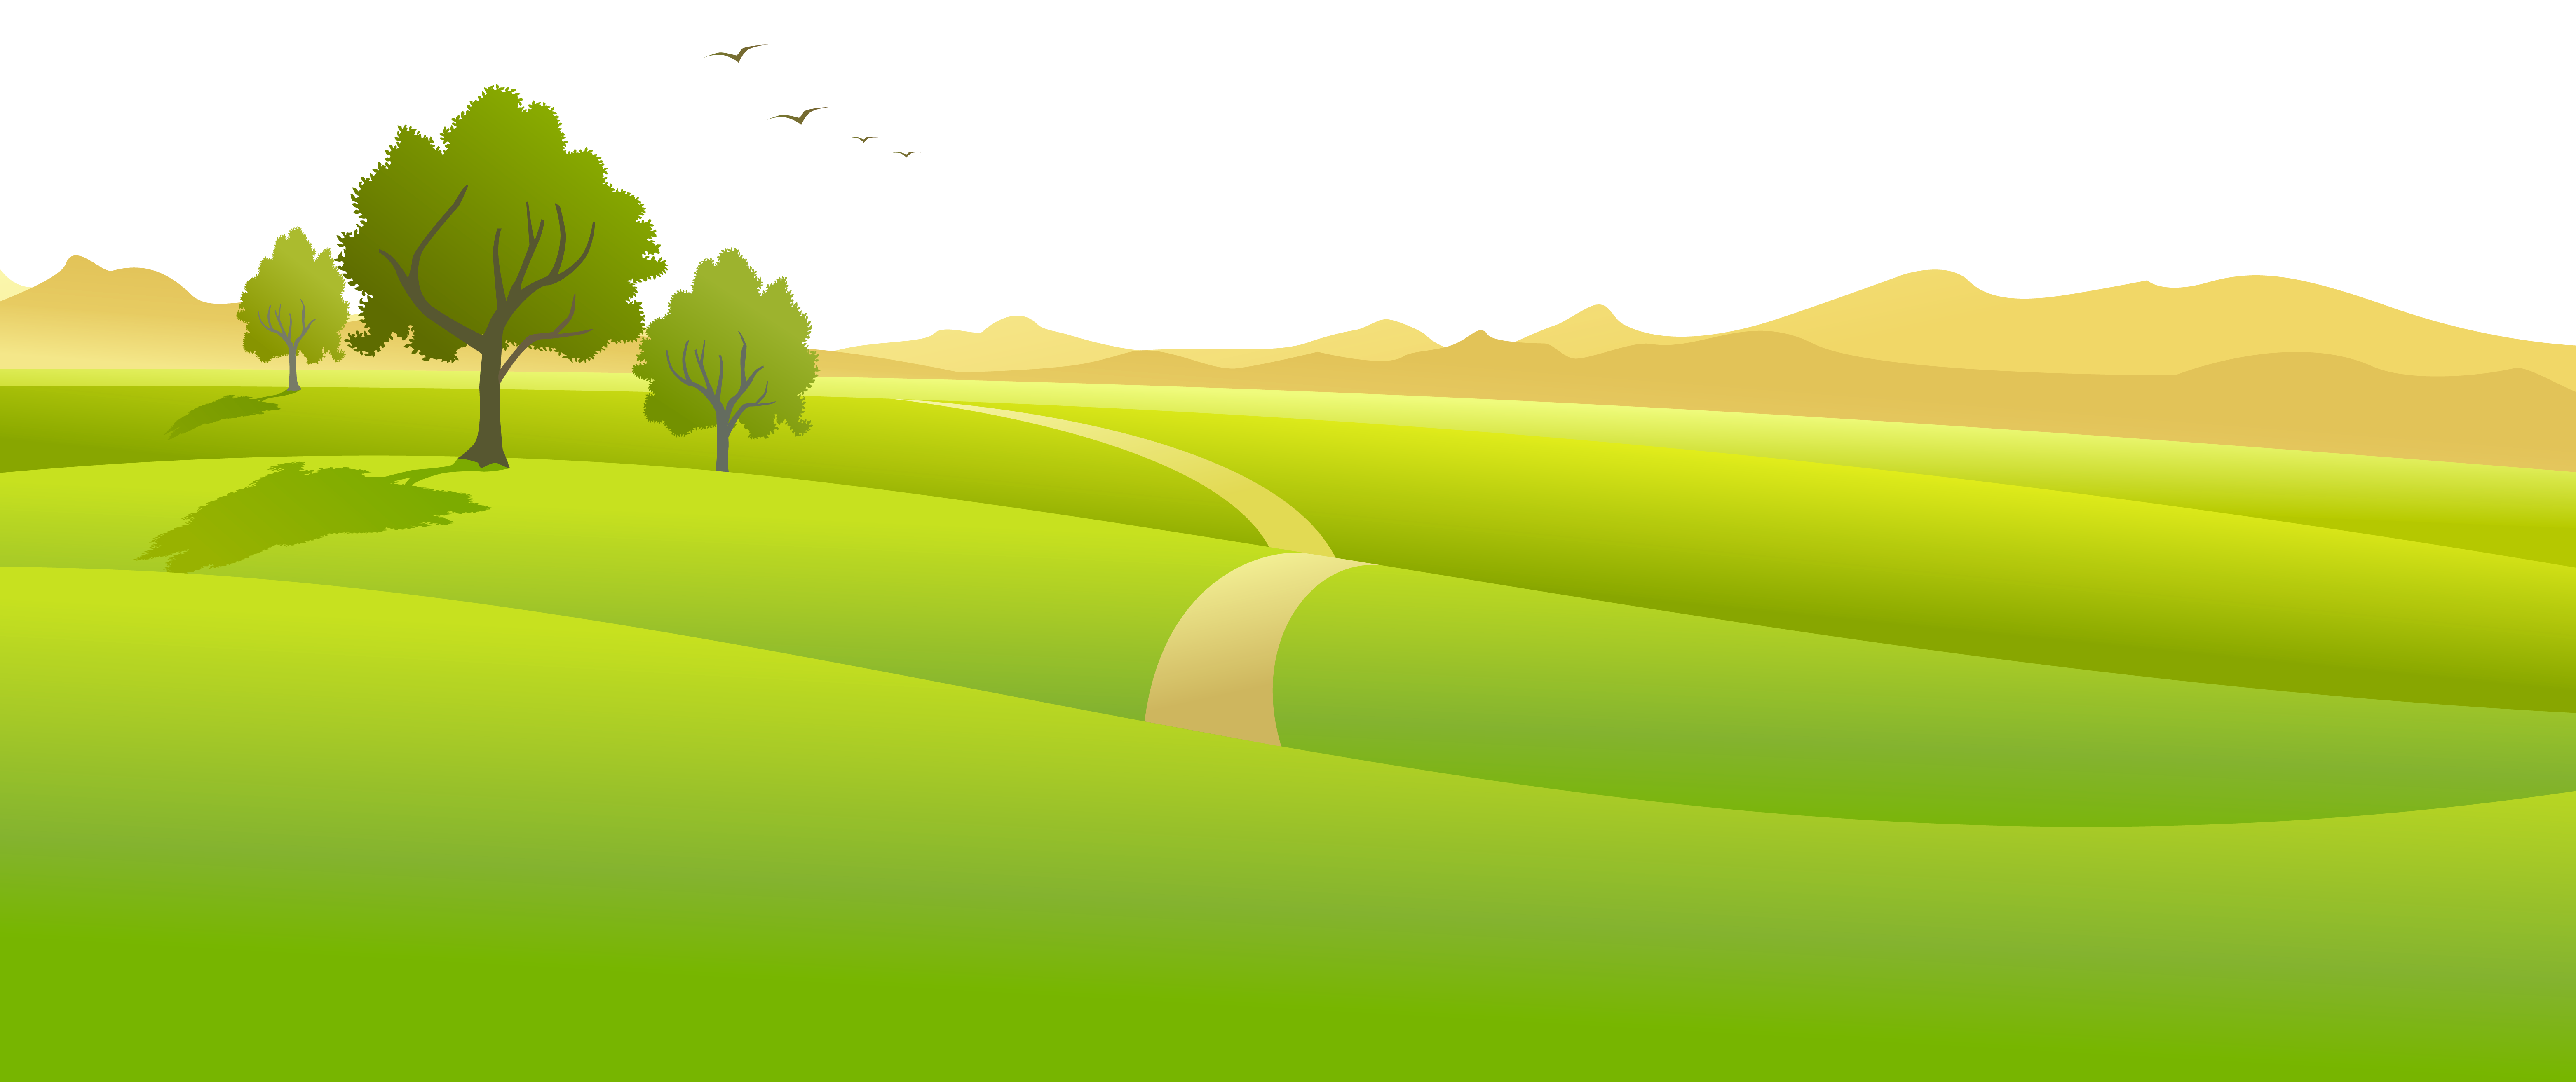 Meadow ground with trees. Landscape clipart worker